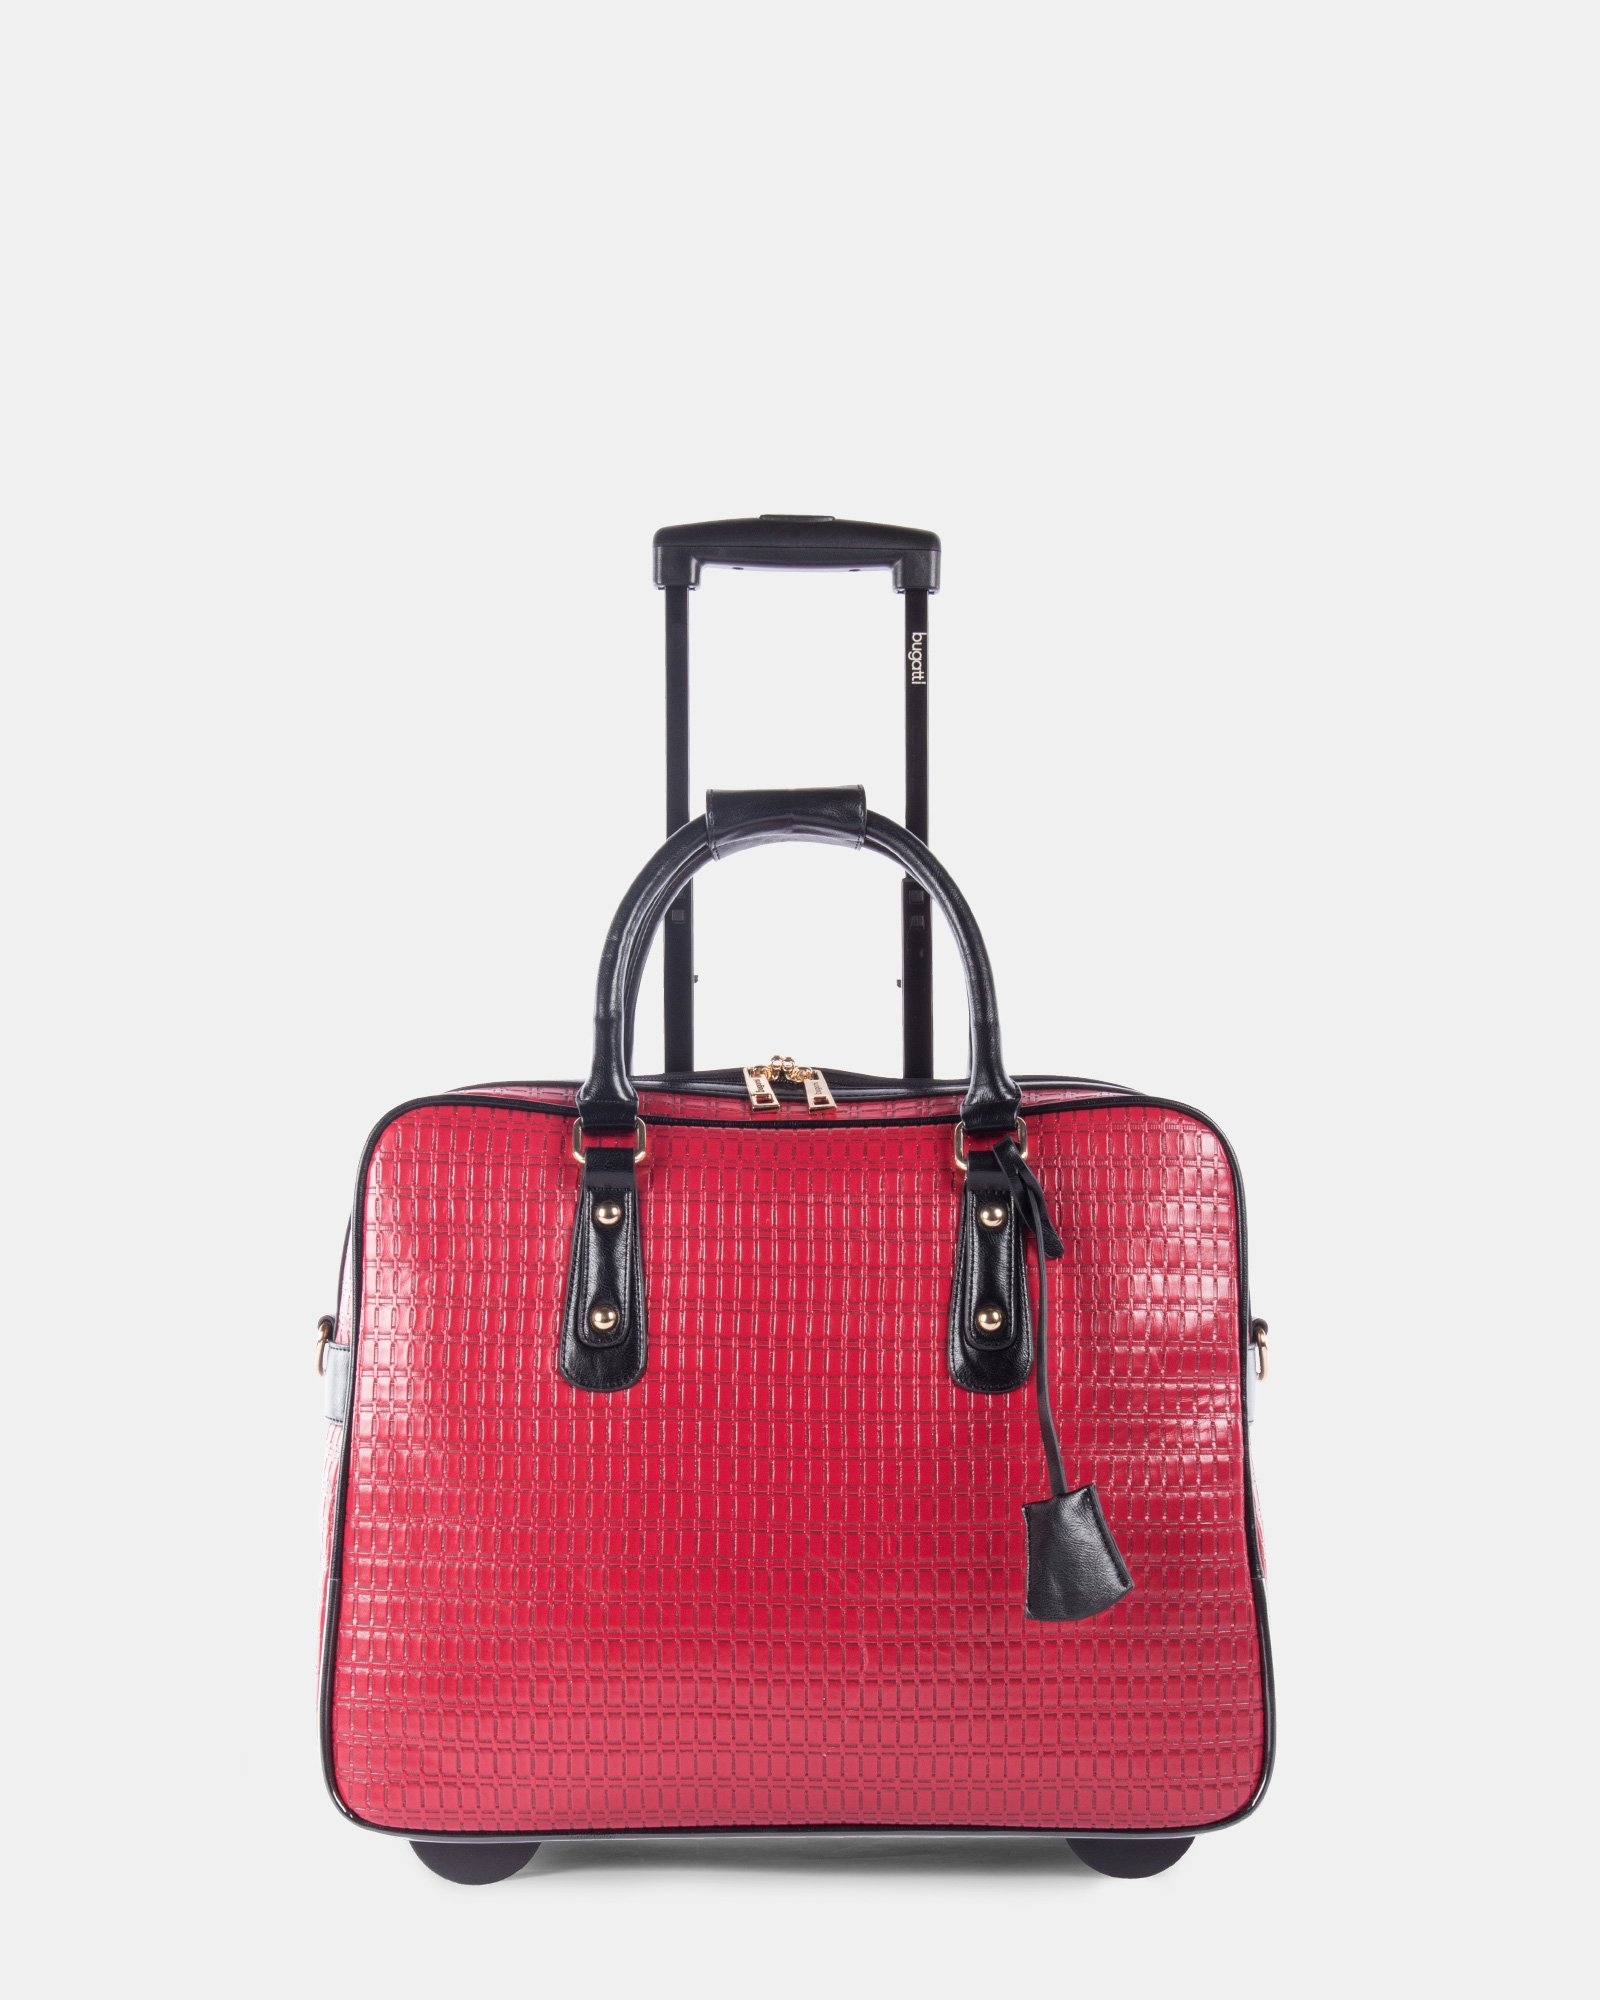 7ba2d7382e8 Bugatti ladies bag on wheels red main zoom jpg 1600x2000 Ladies bags